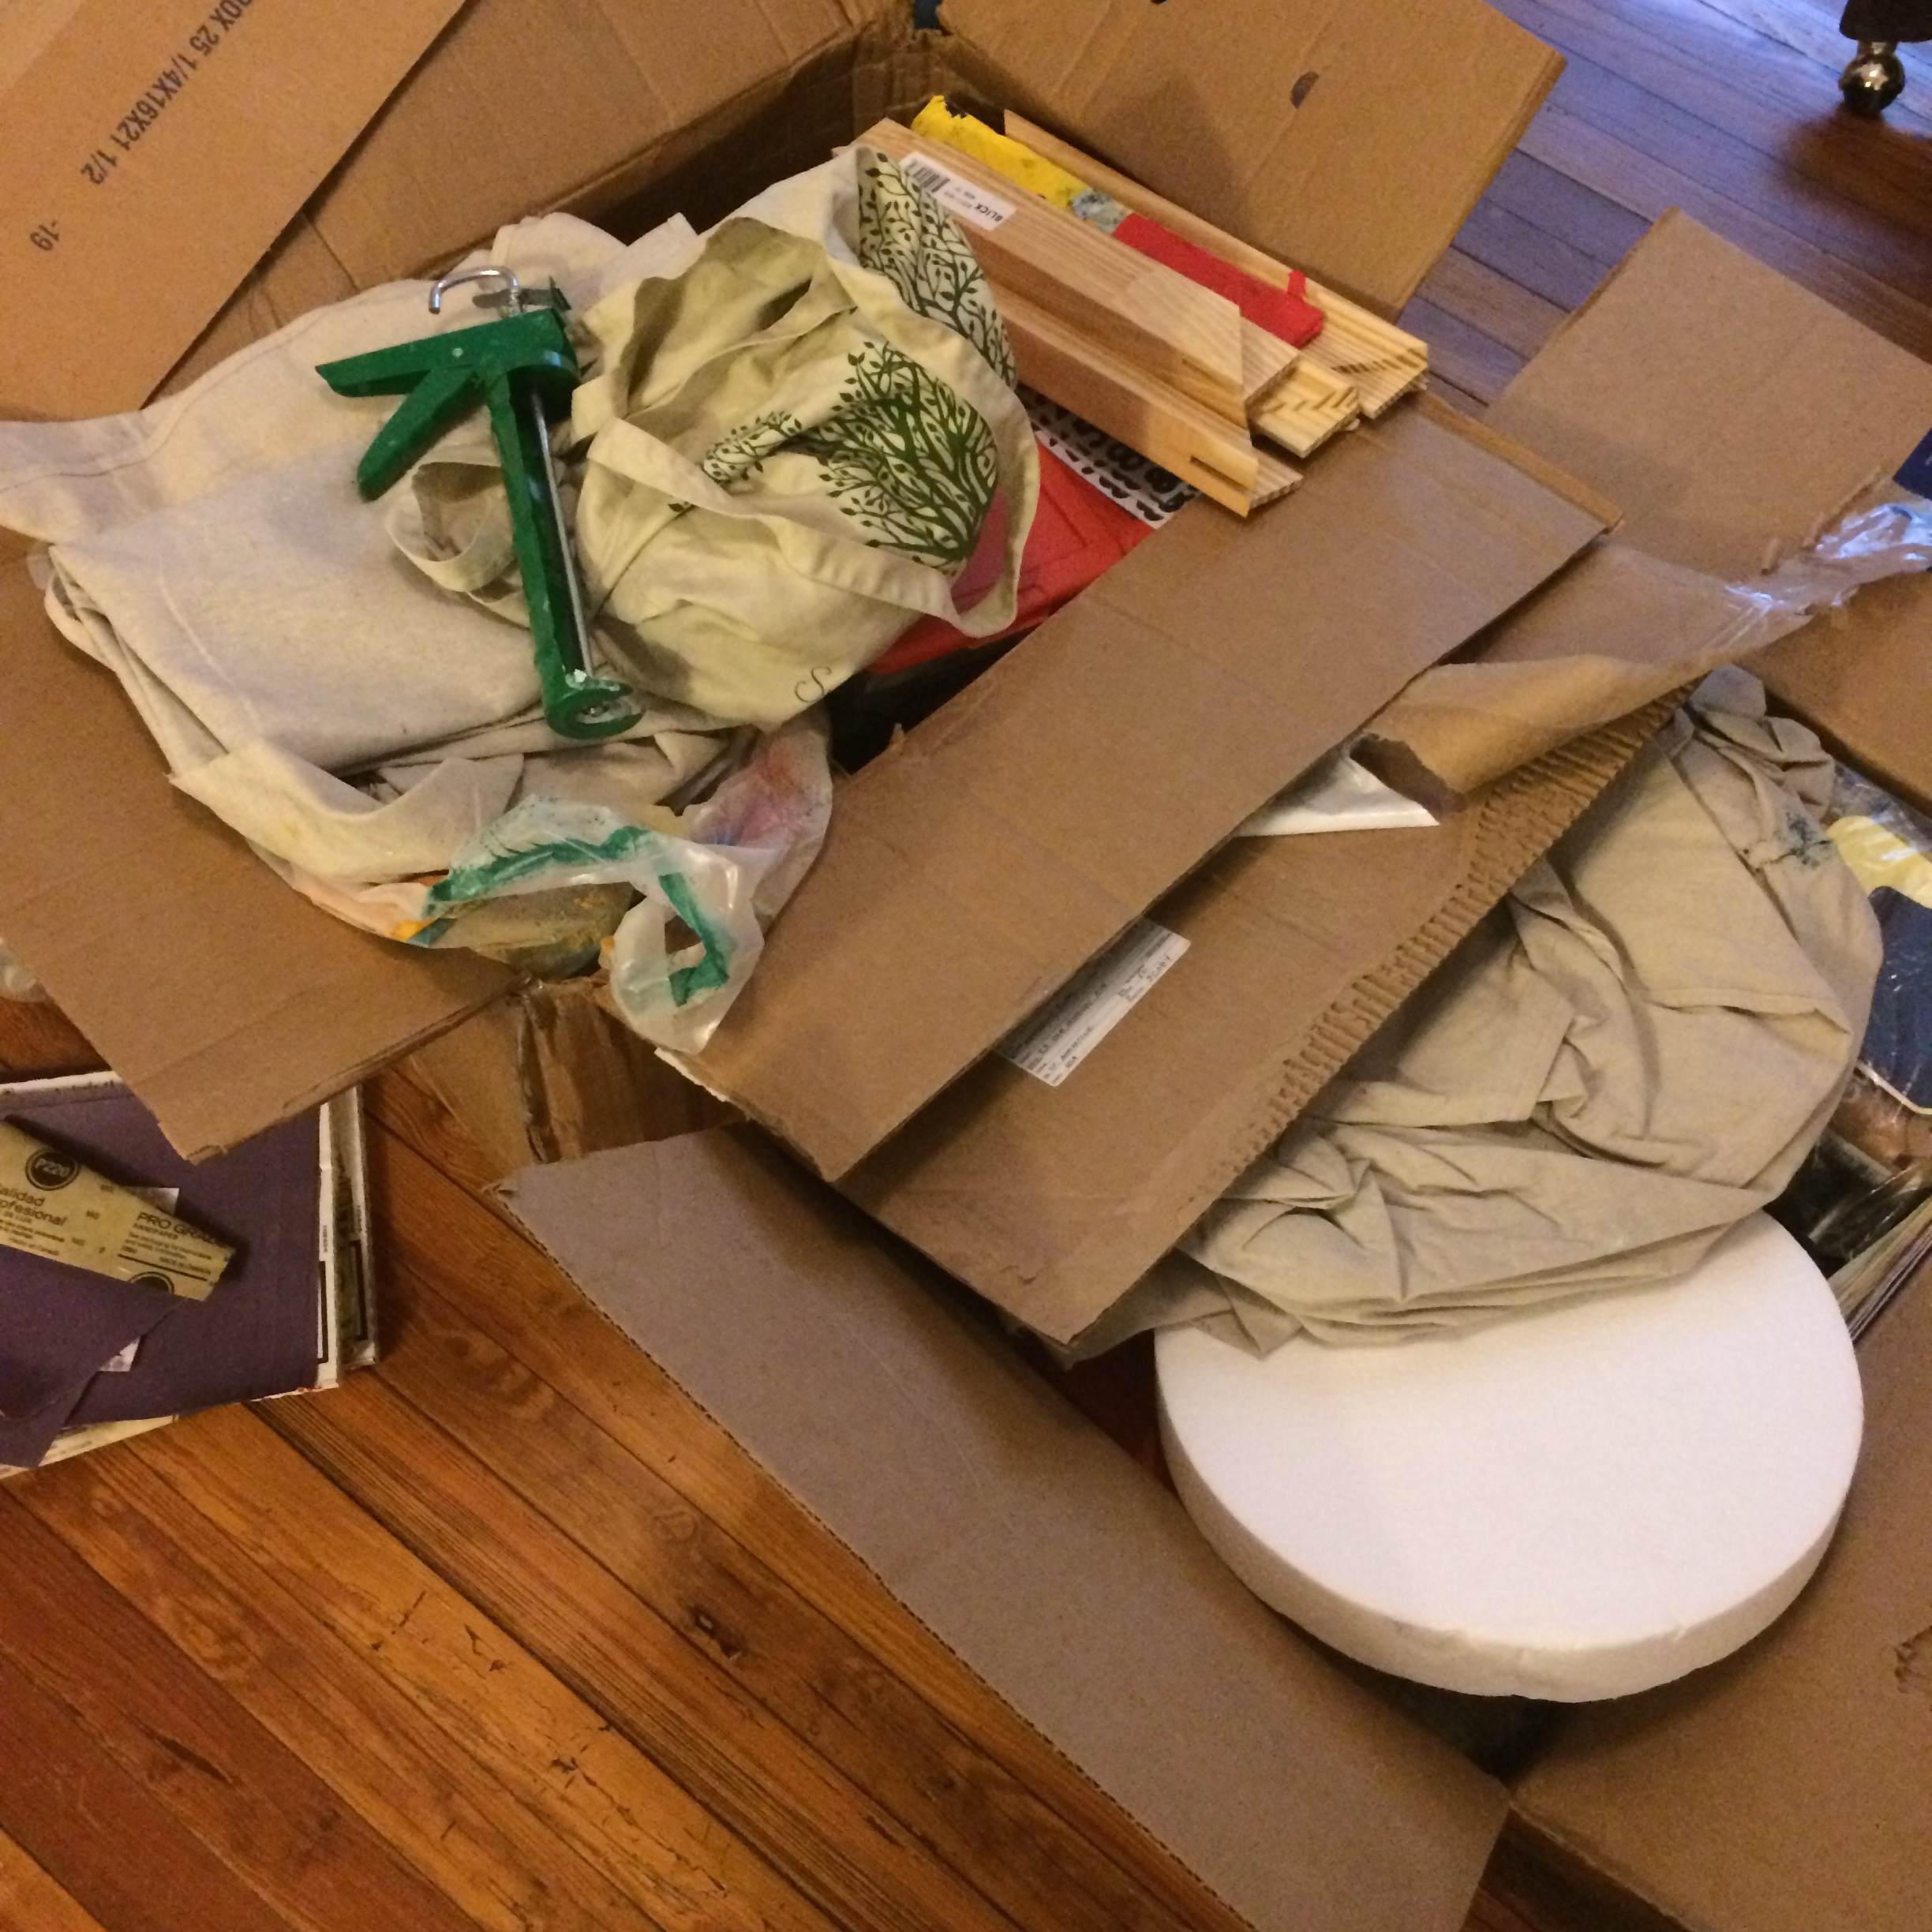 Dad sent TWO BIG BOXES OF ART SUPPLIES FROM HOME!